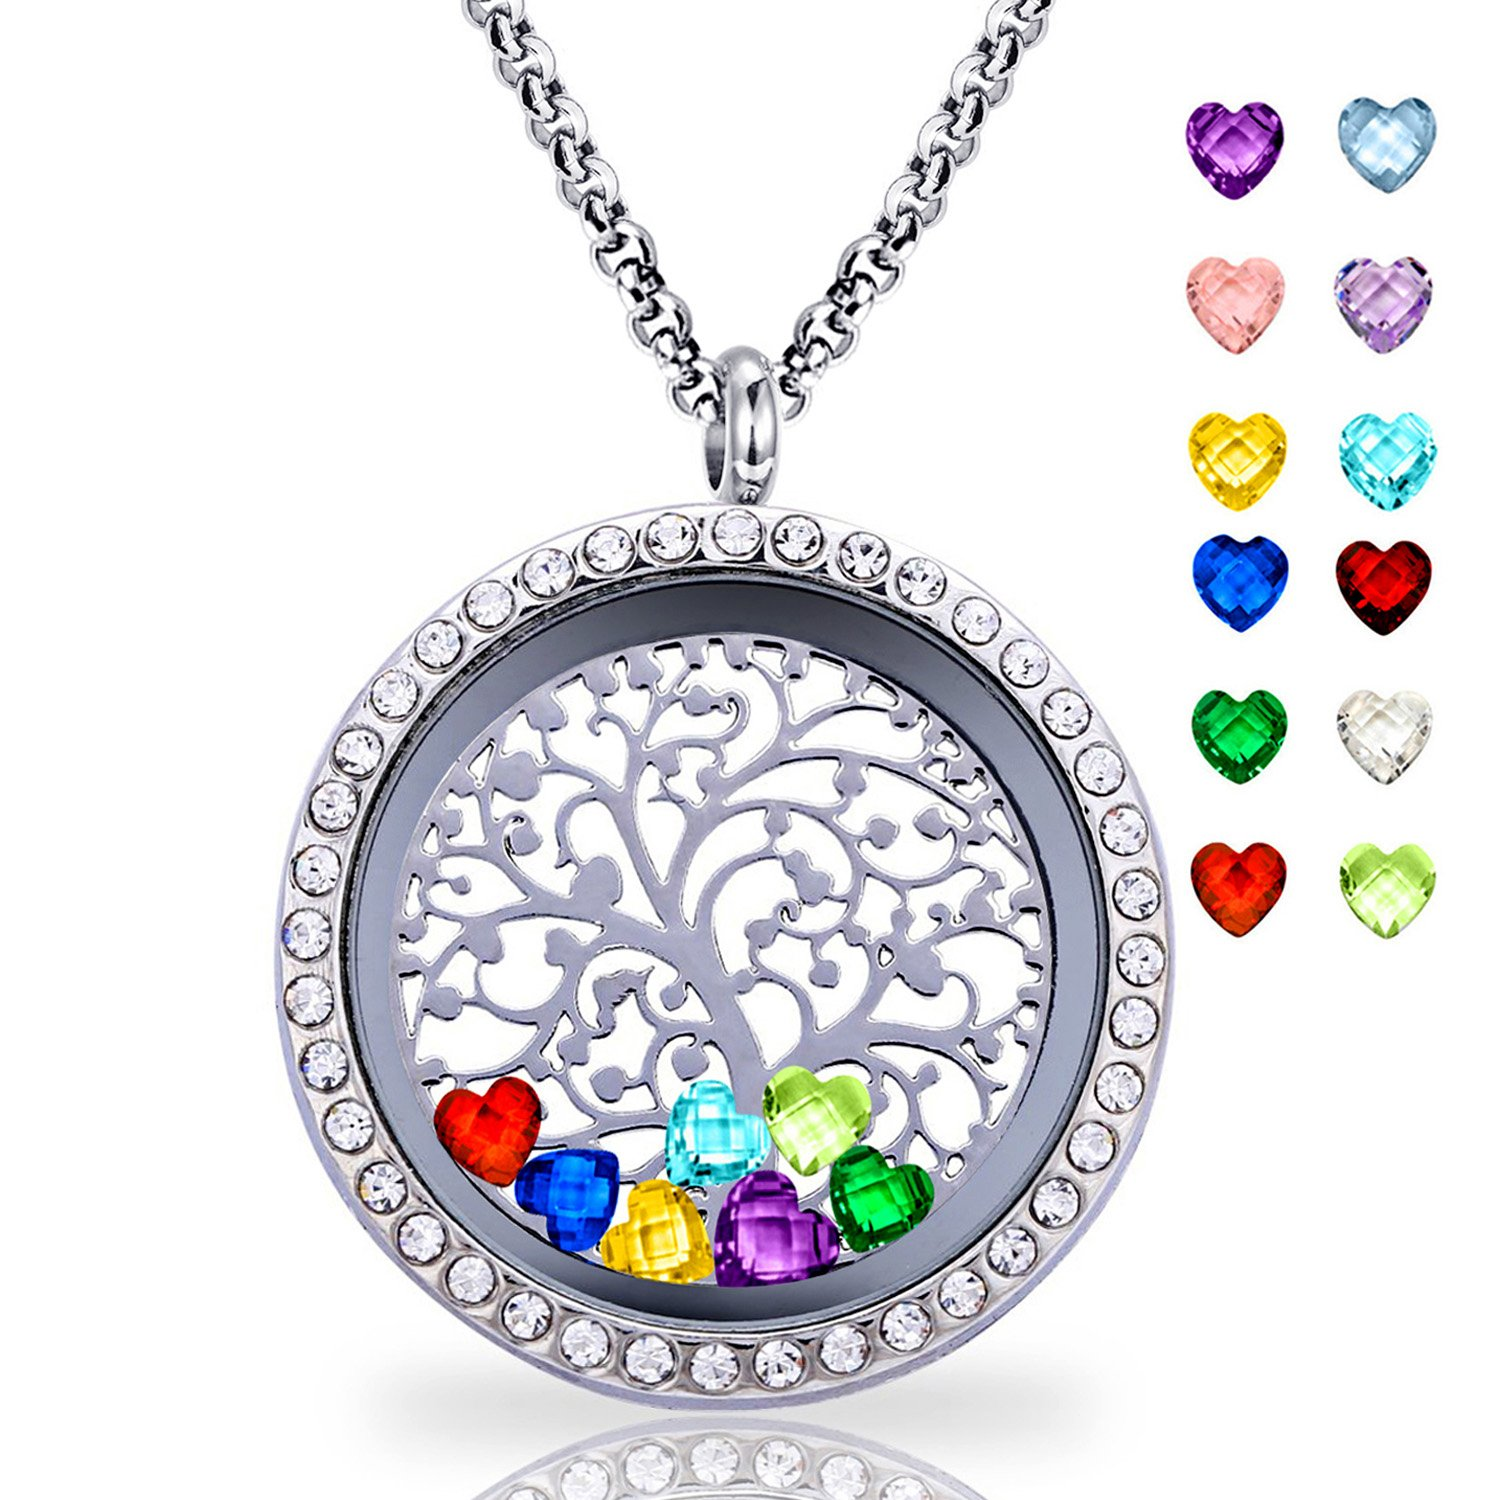 stone grandma birthstone lockets family pendant crystal personalized necklace birthstones tree